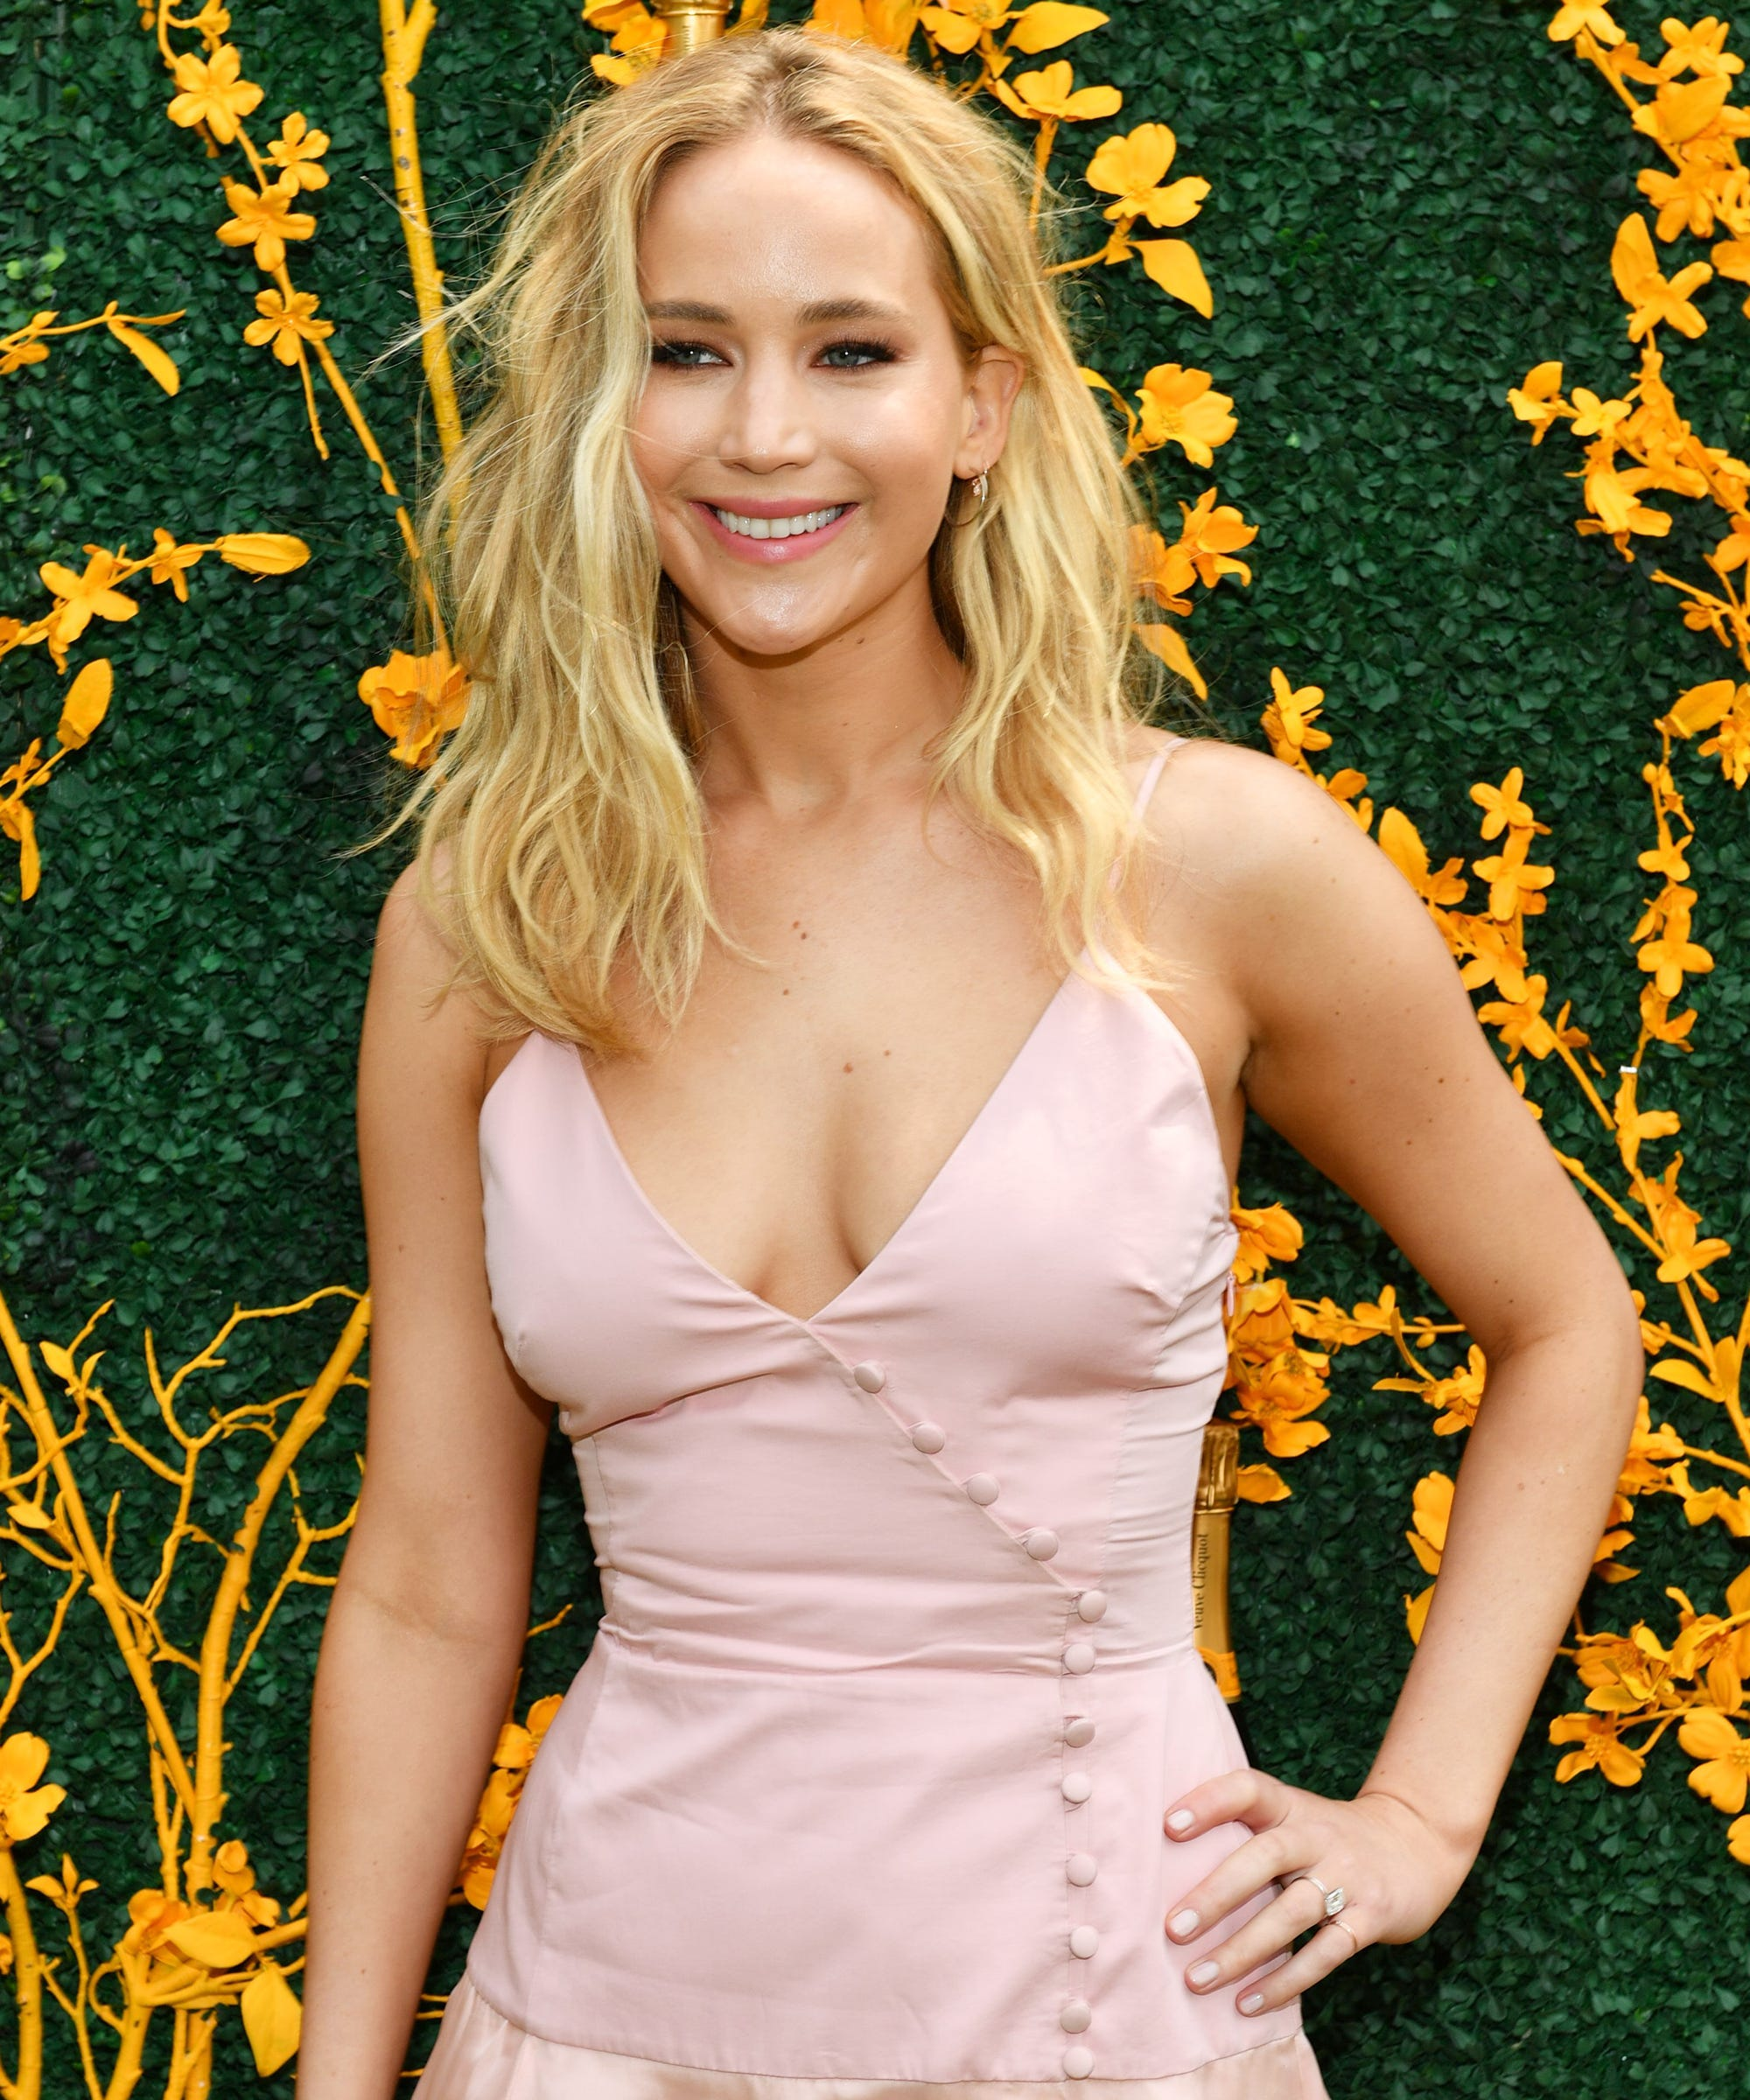 Jennifer Lawrence's Pink VC Polo Classic Dress Is Perfect For A Summer Wedding